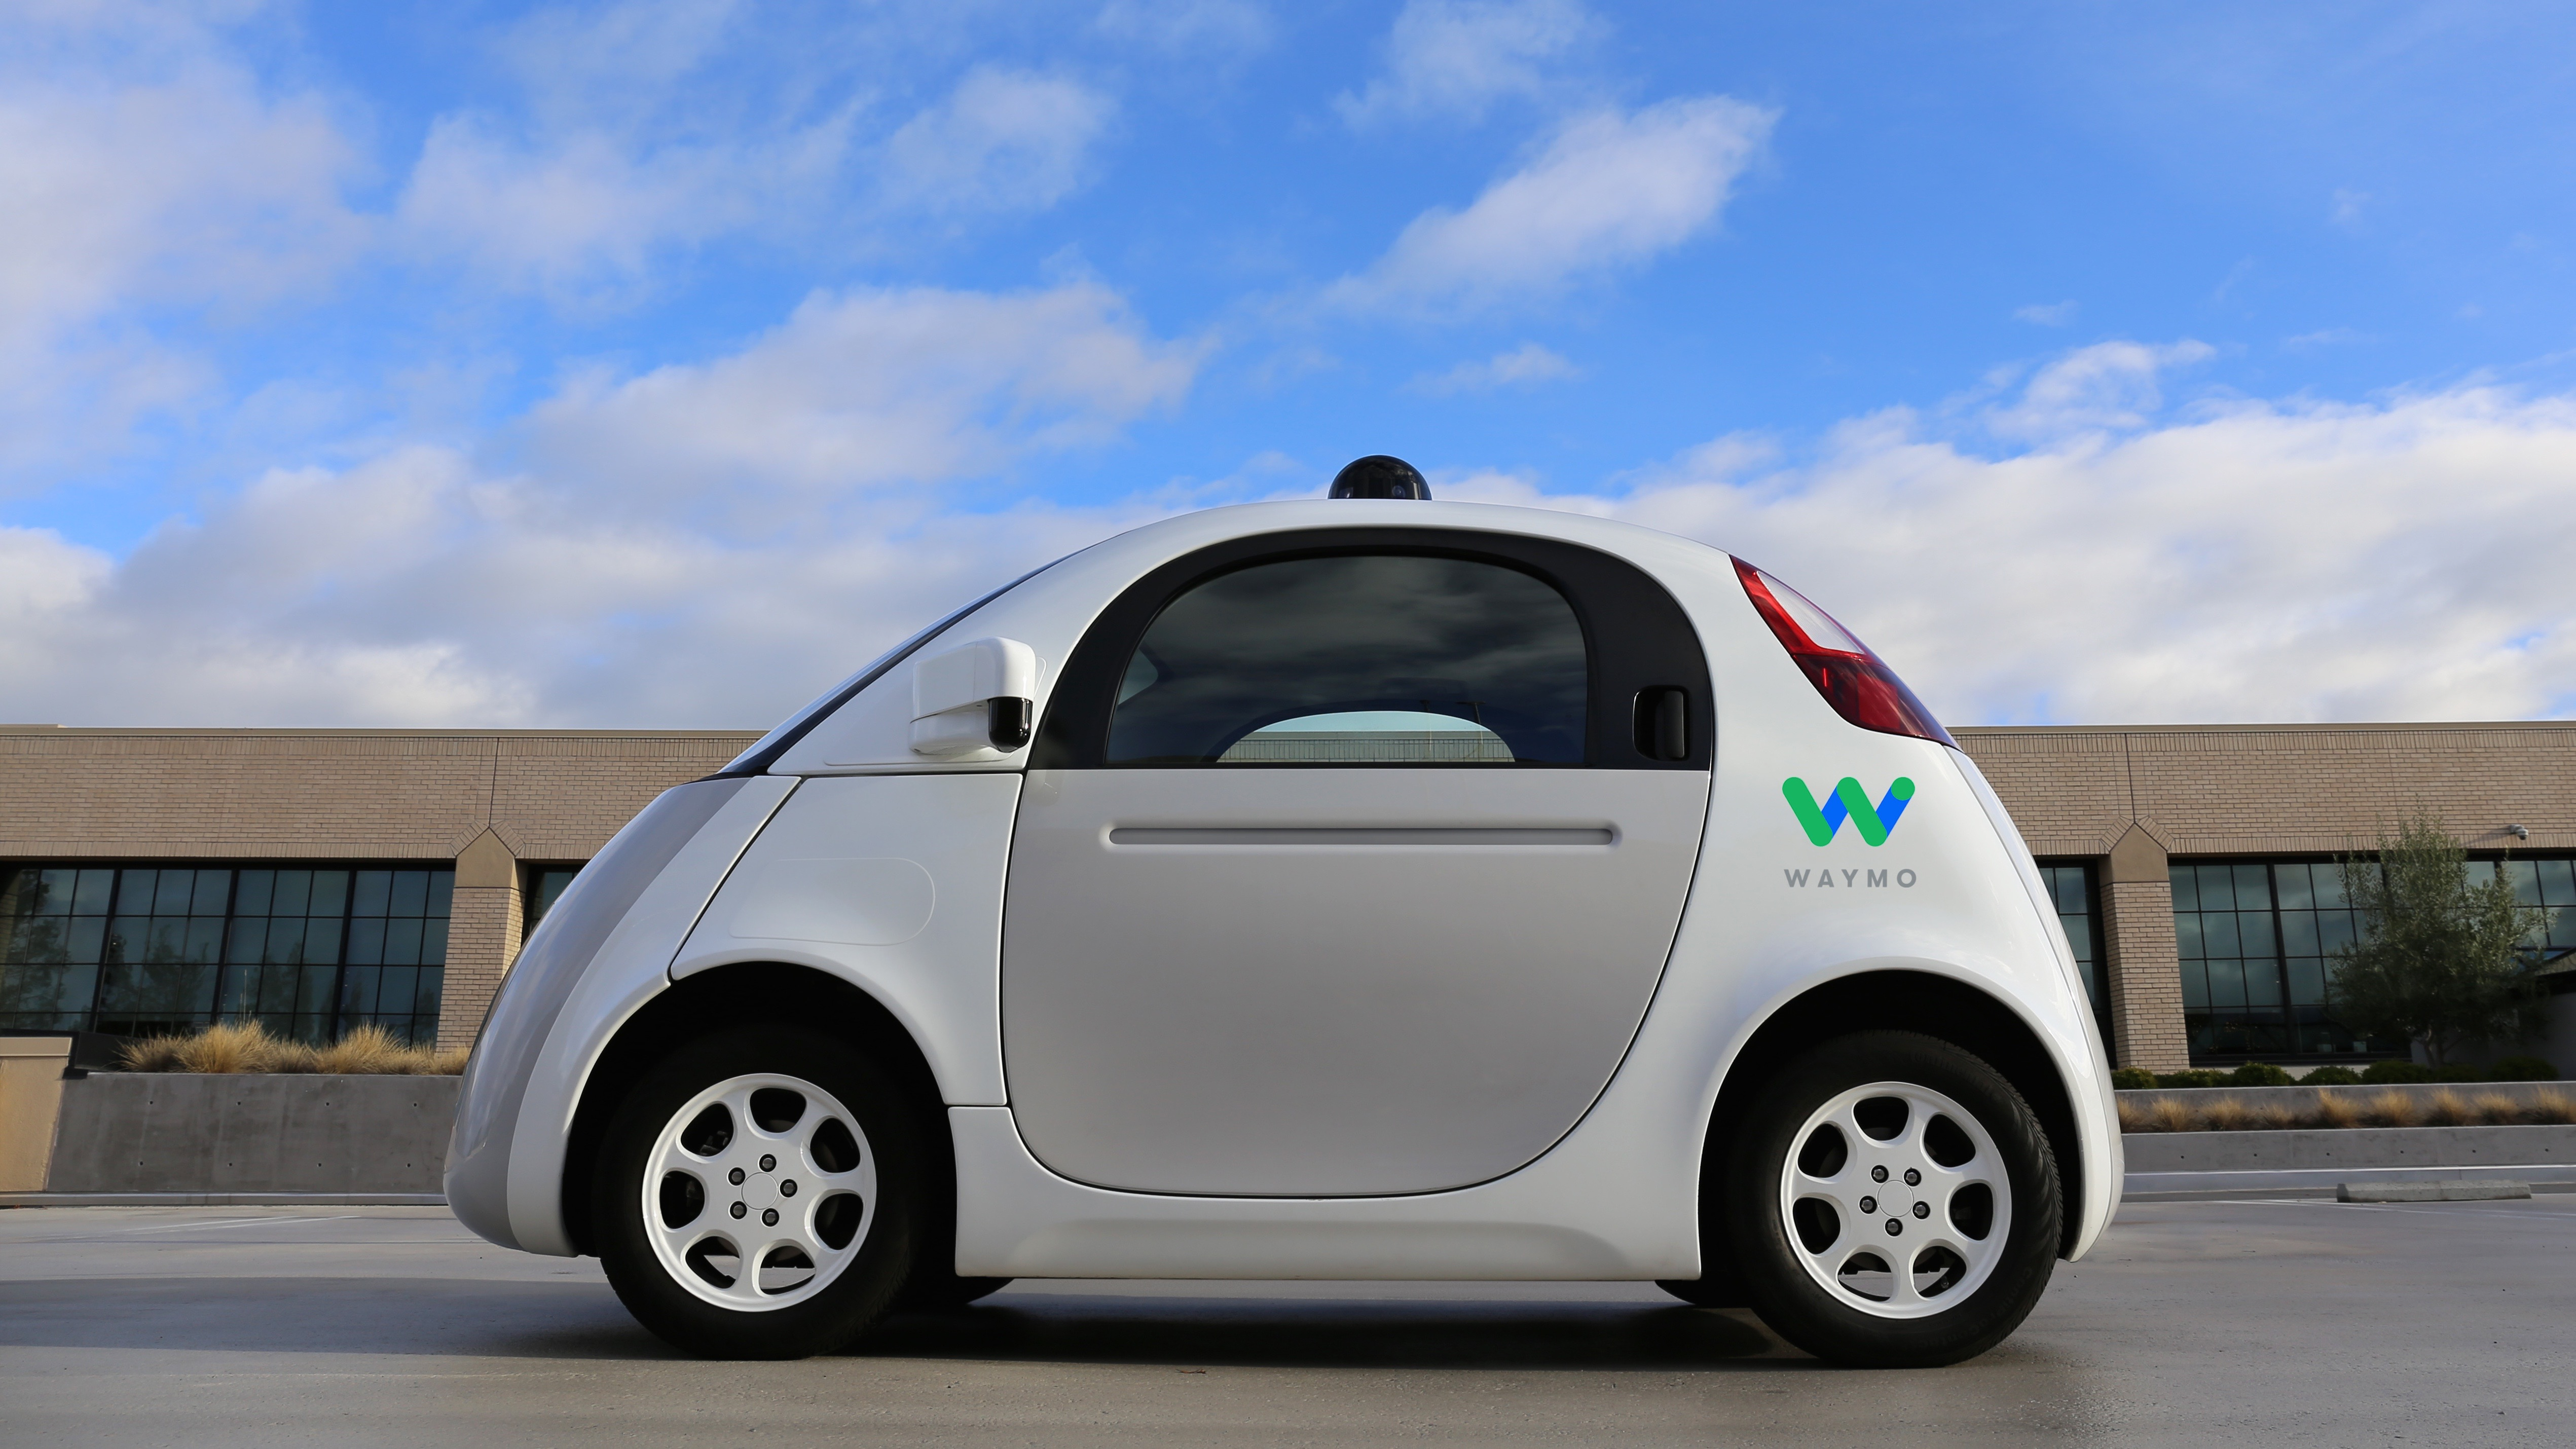 Future driverless cars could soften on impact to protect squishy pedestrians